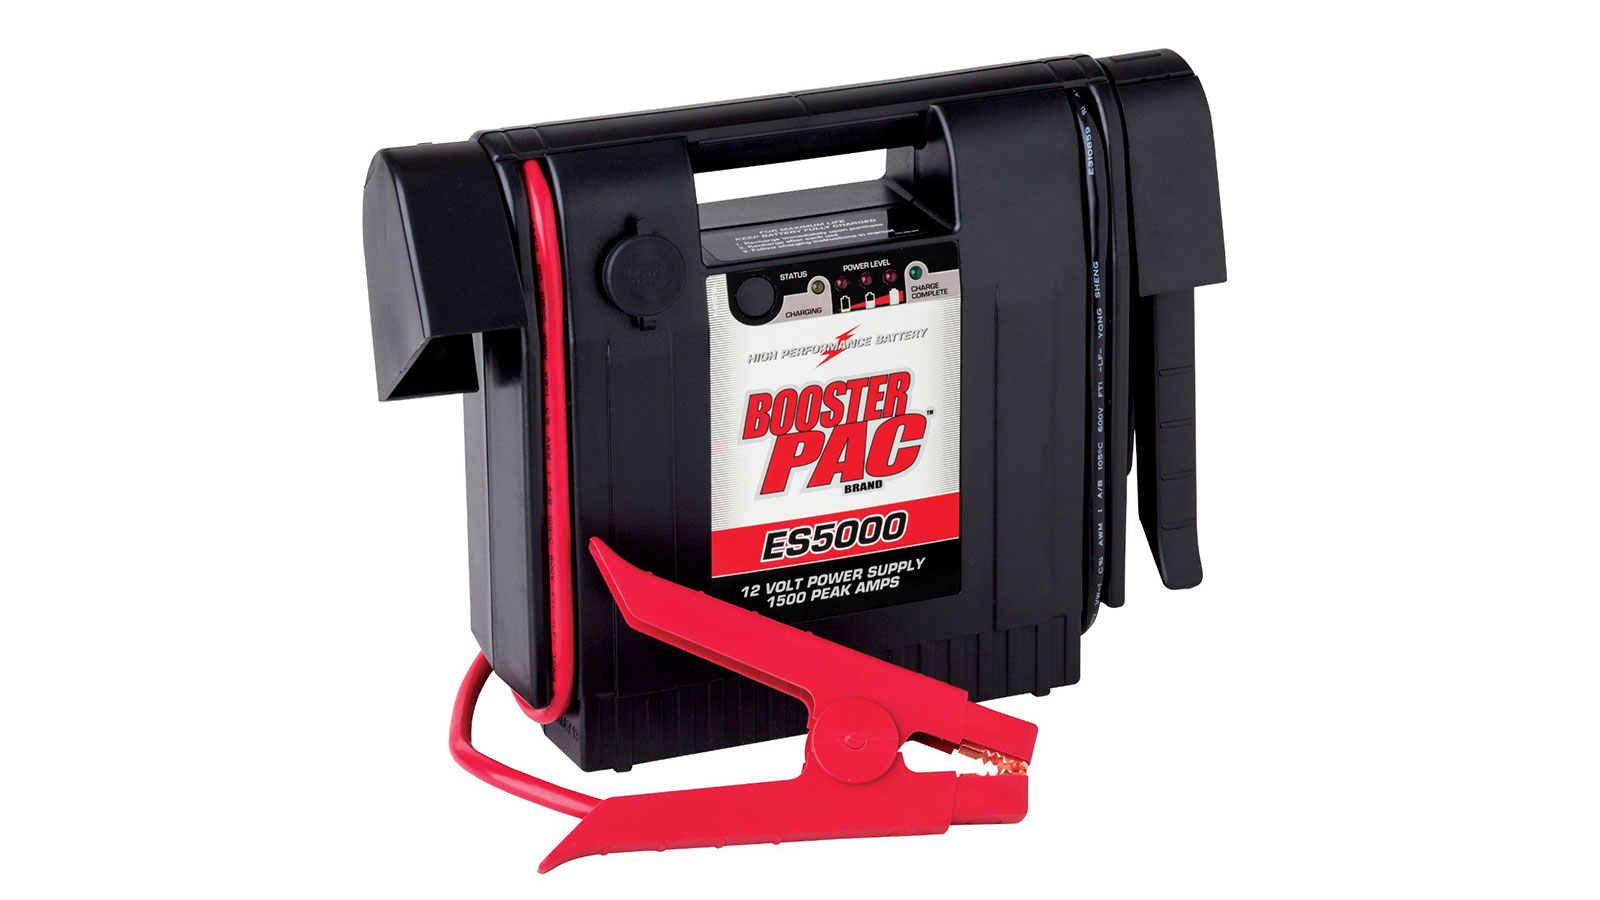 Booster PAC ES5000 Jump Starter | gifts for men | gifts for drivers